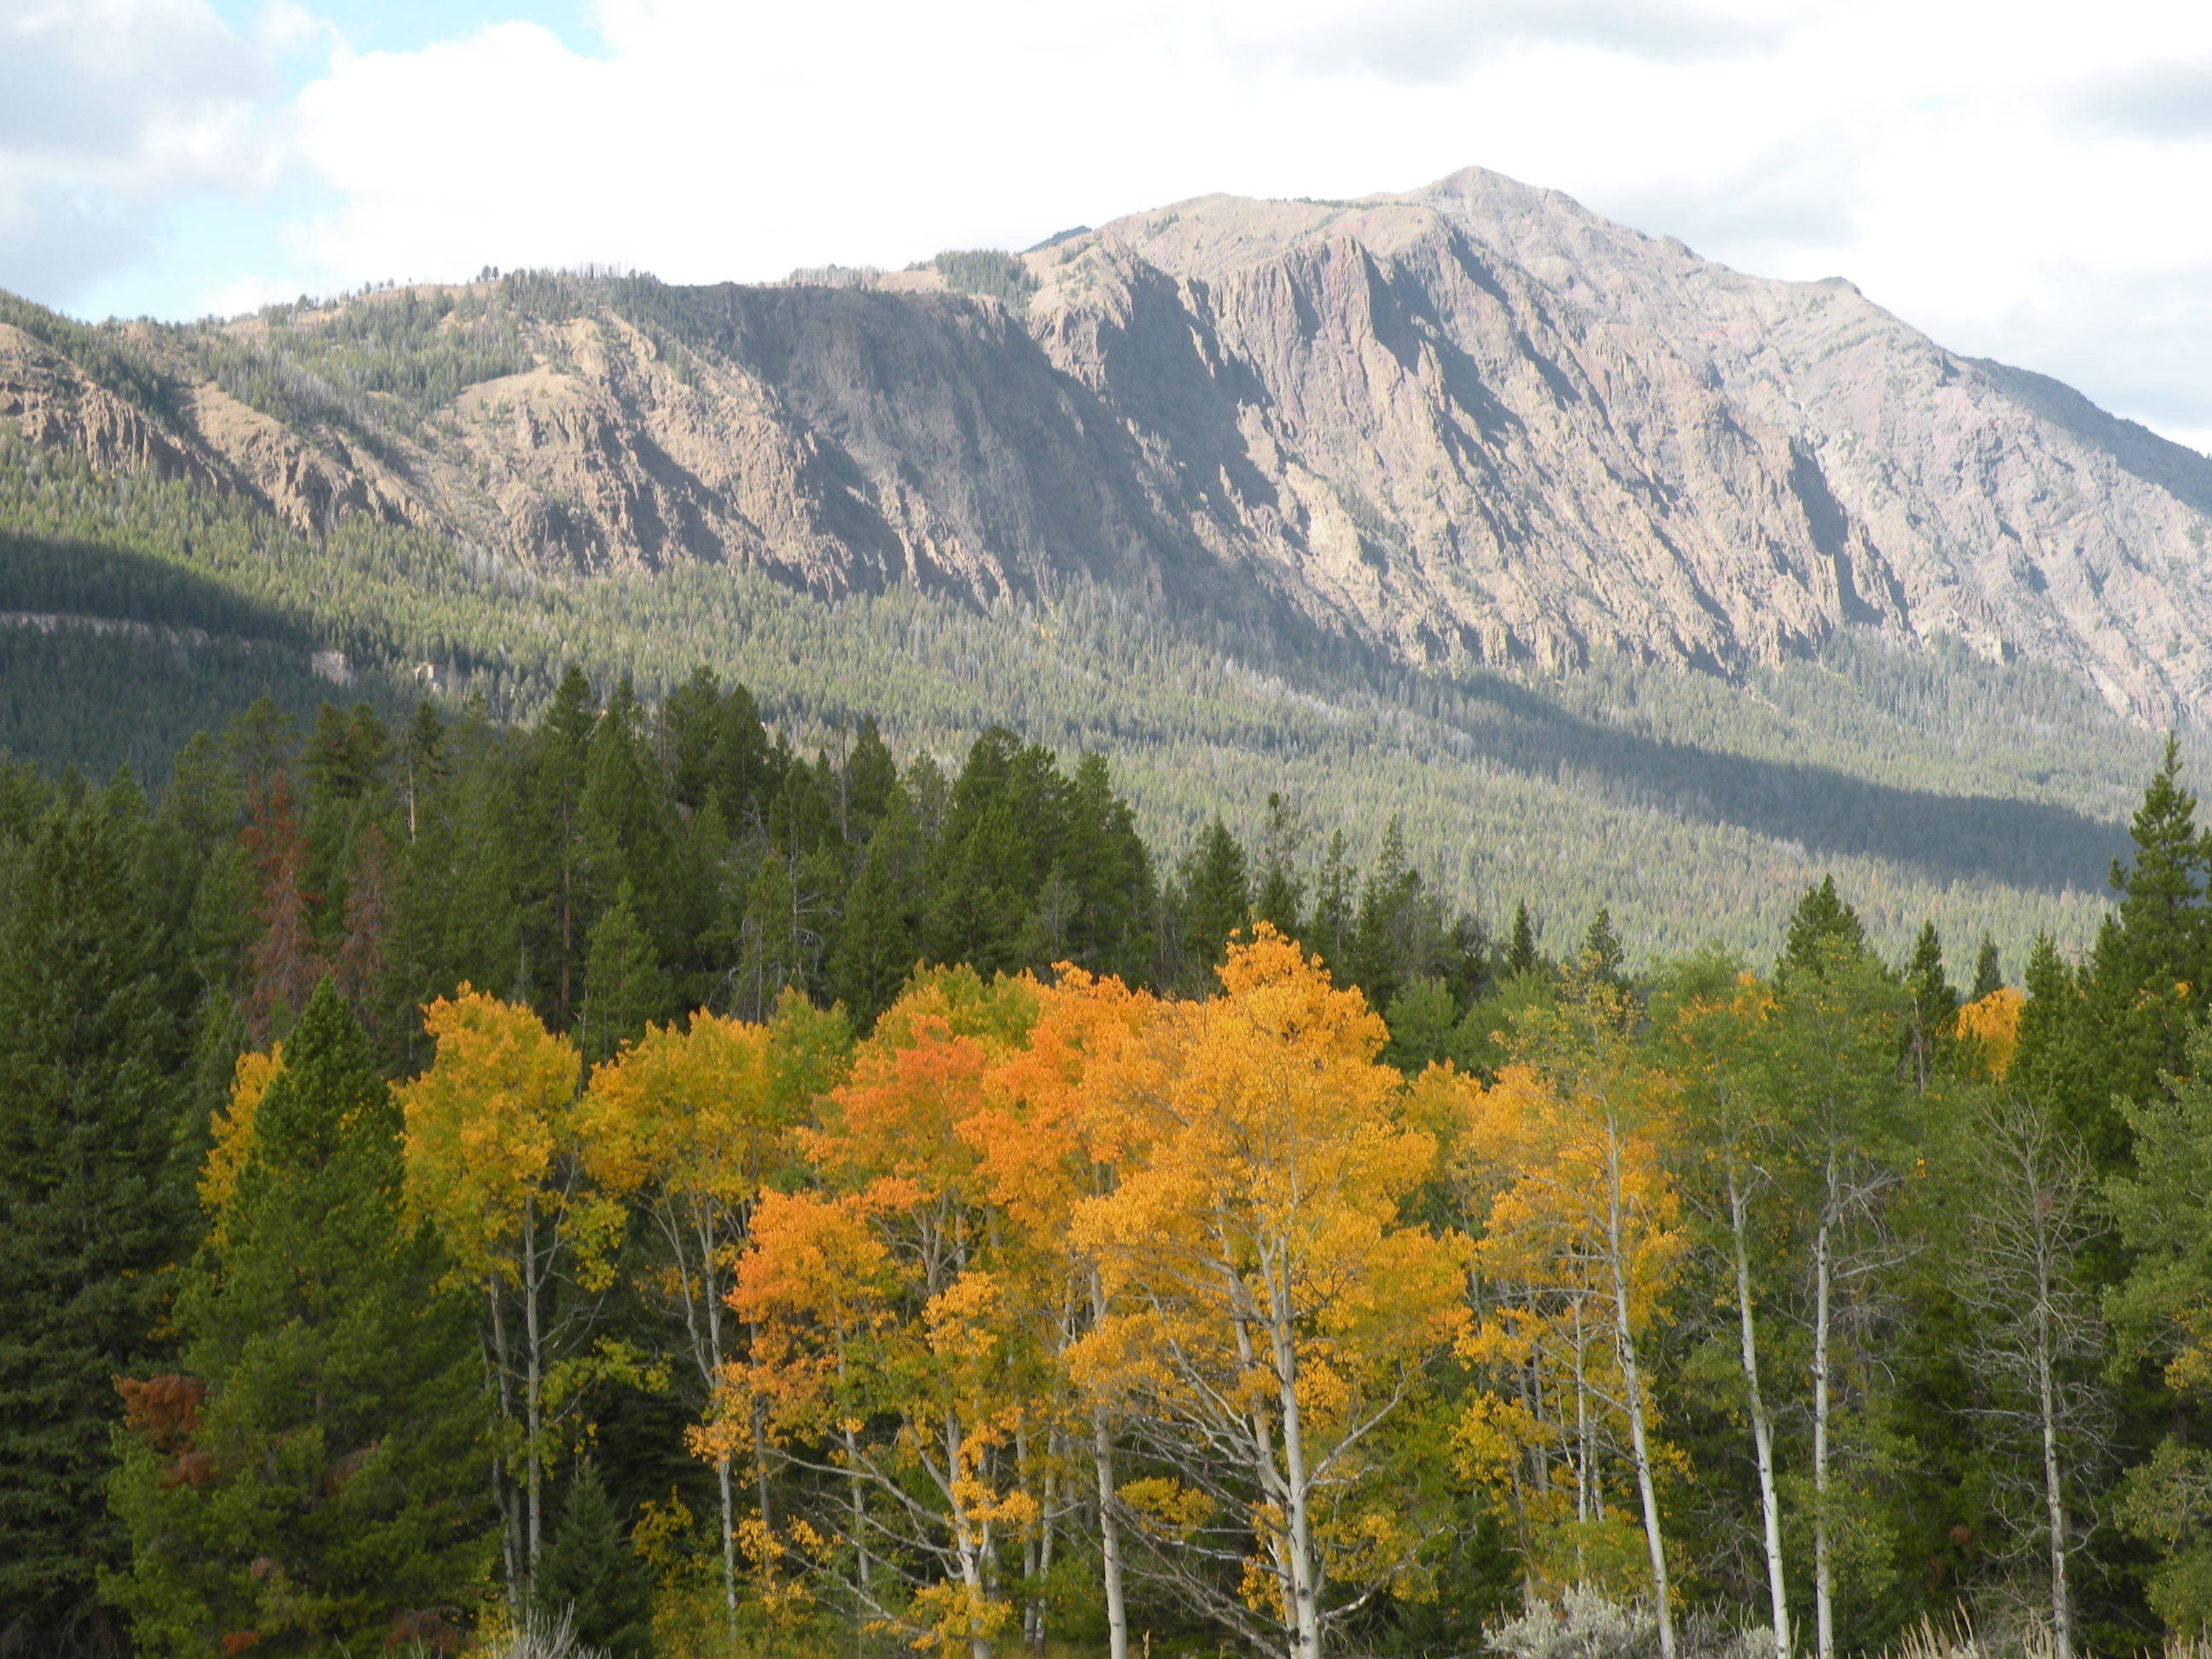 Photograph of fall colors from Highway 296 looking south